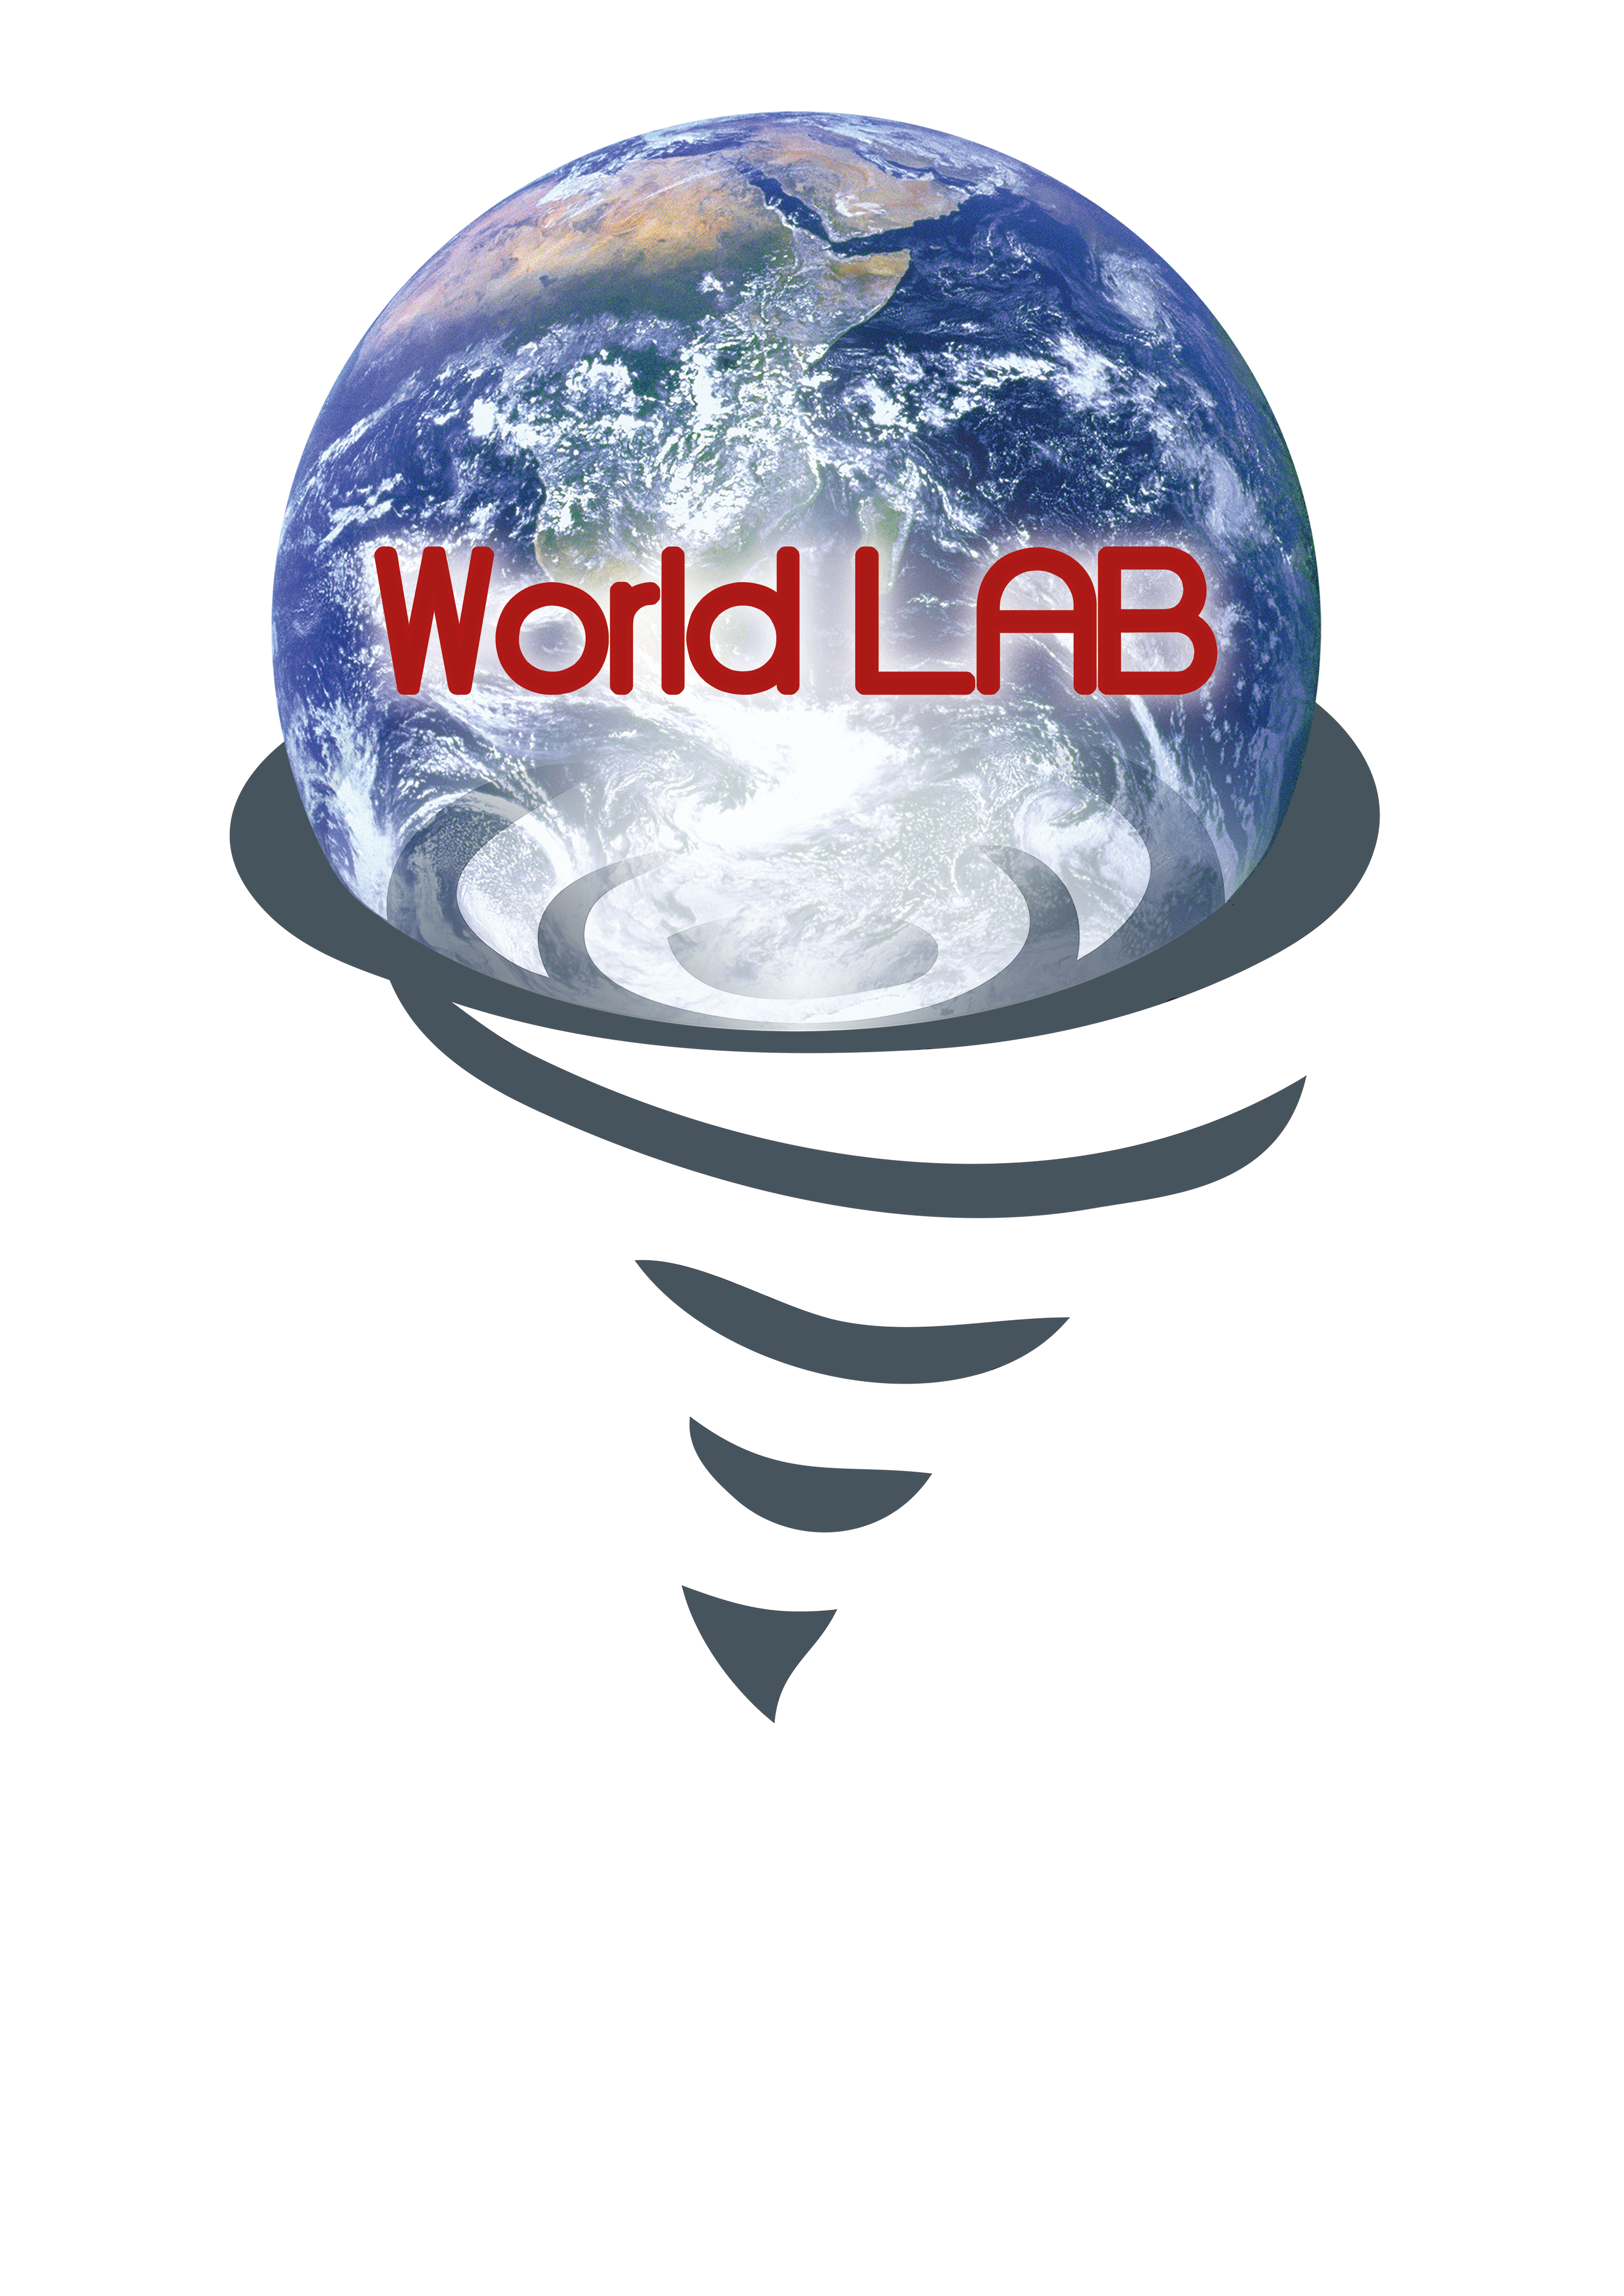 Worldlab-logo-2018-11-cmyk-transparent-final